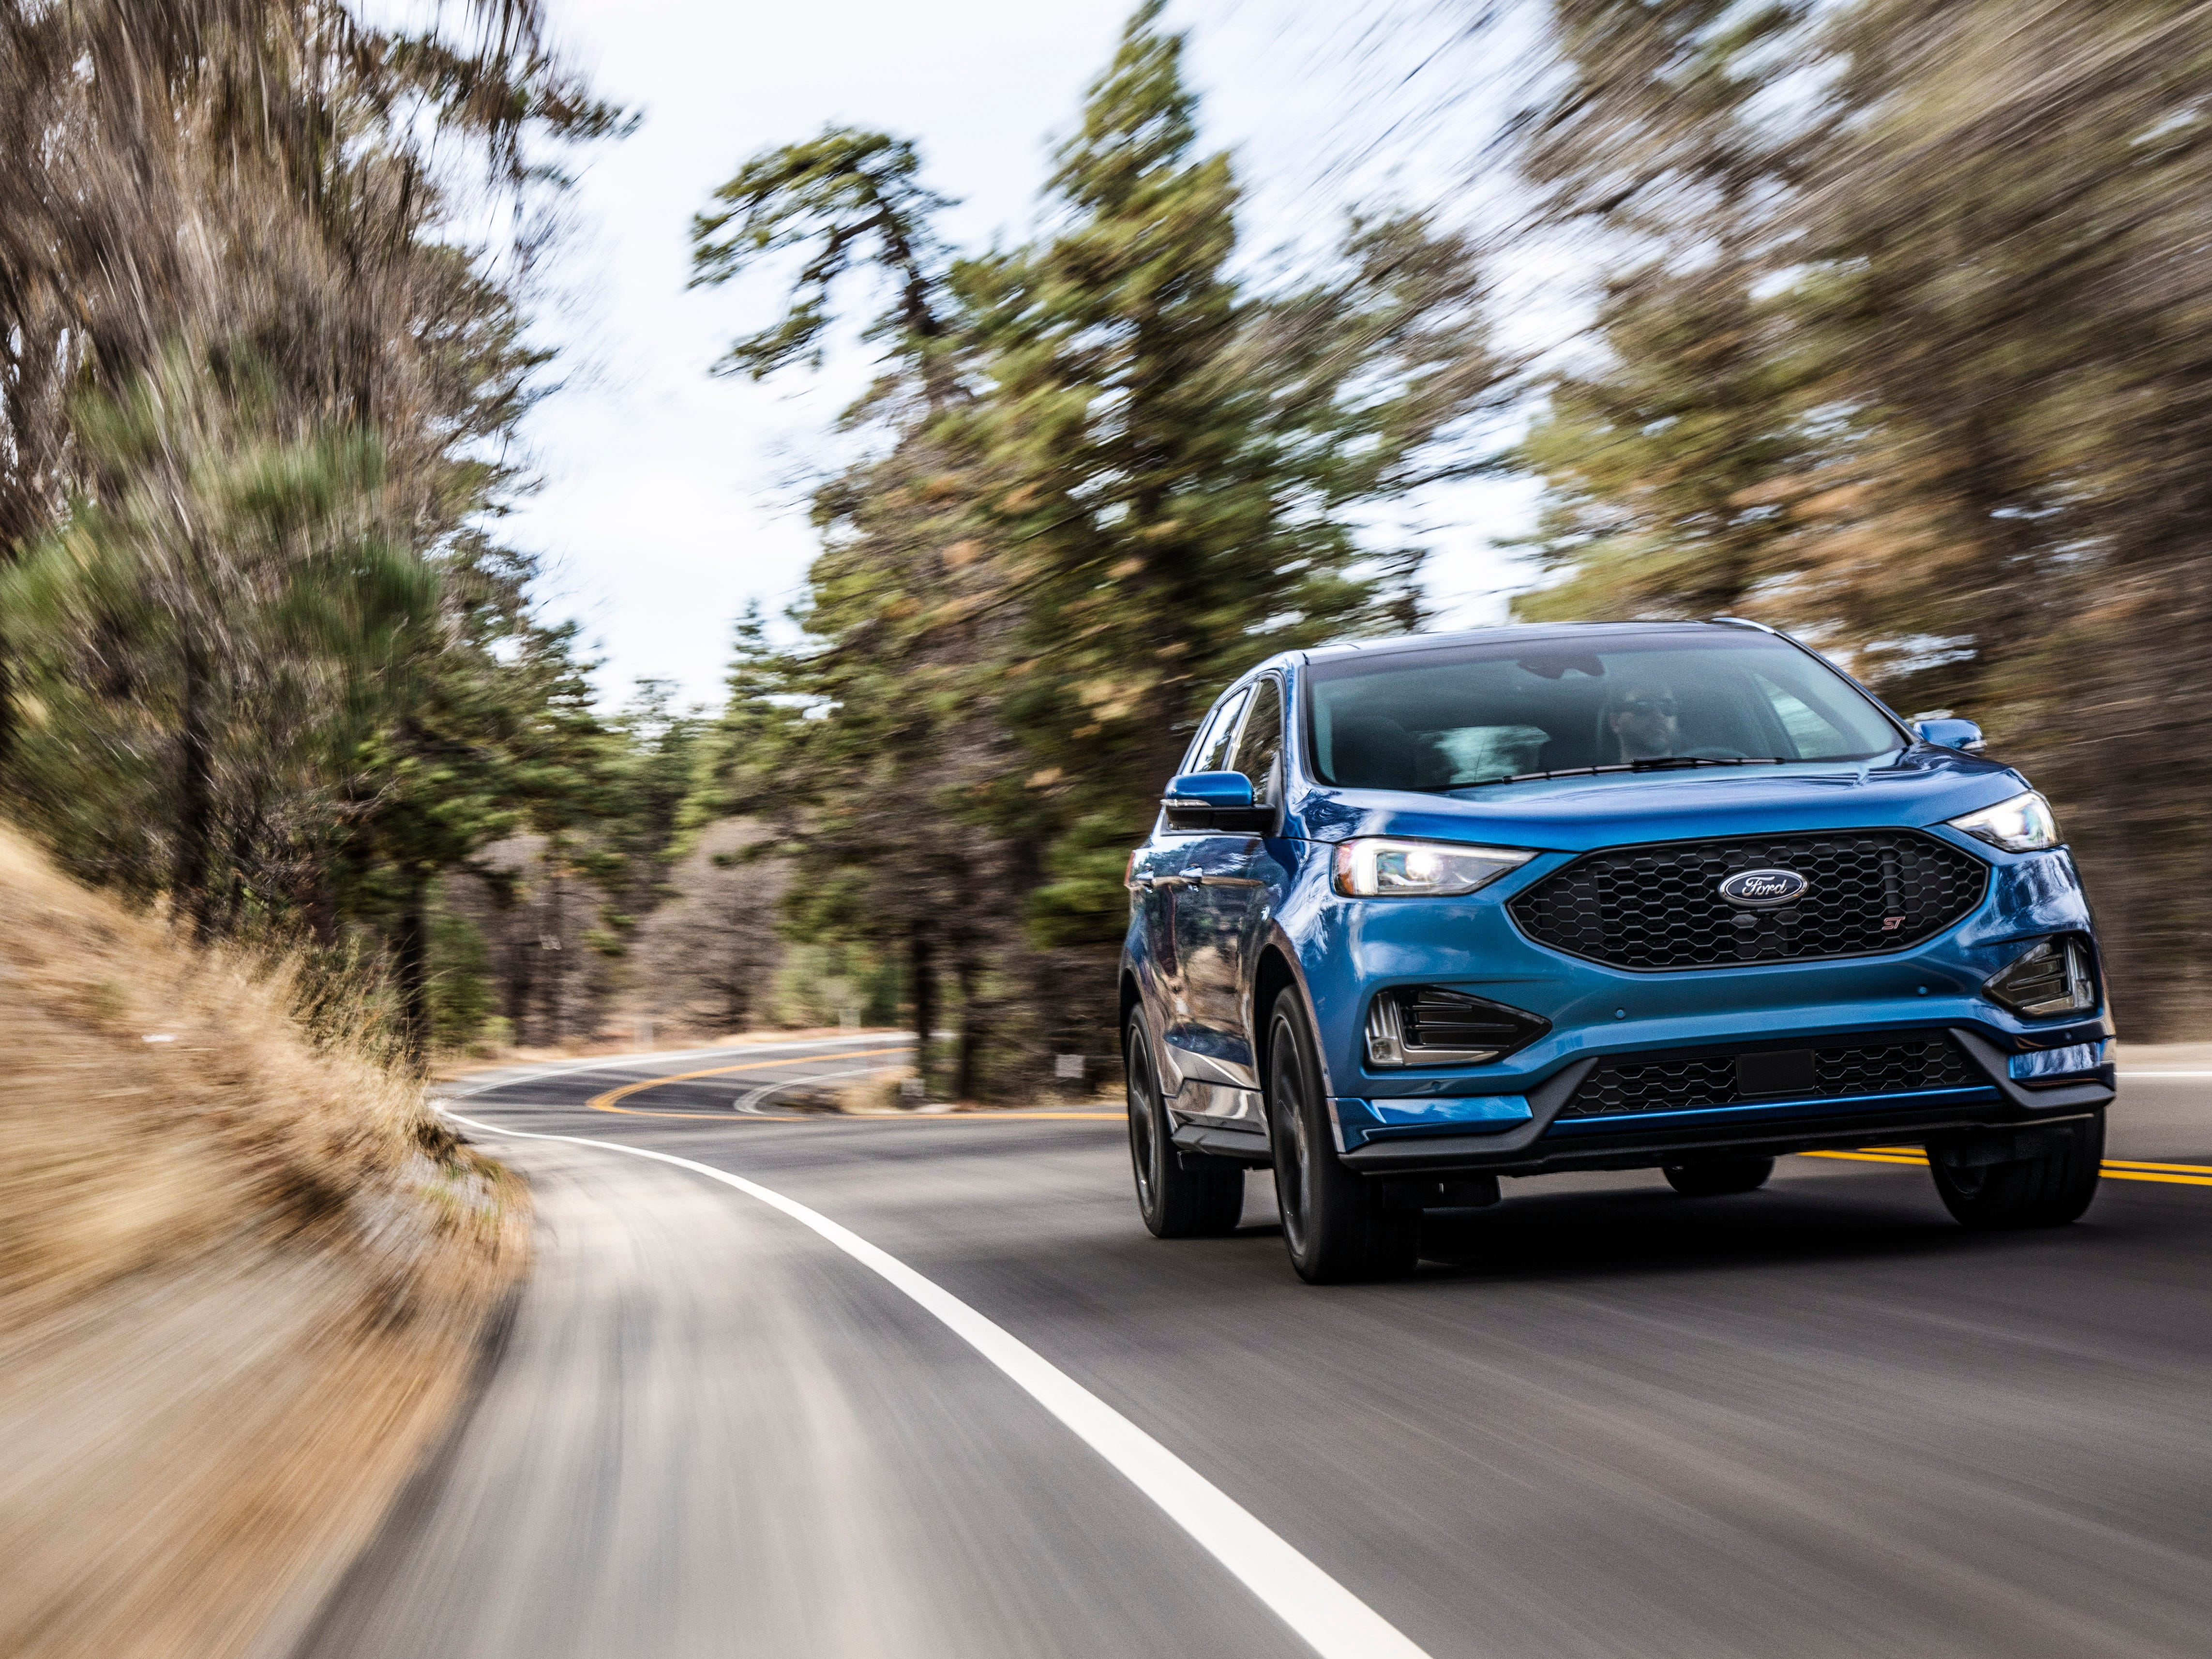 The 2019 Ford Edge ST is the first ST-badged SUV in the Ford stable. Zero-60 mph arrives in less than 6 seconds with a top speed of 130 mph for the 4,500-pound linebacker.